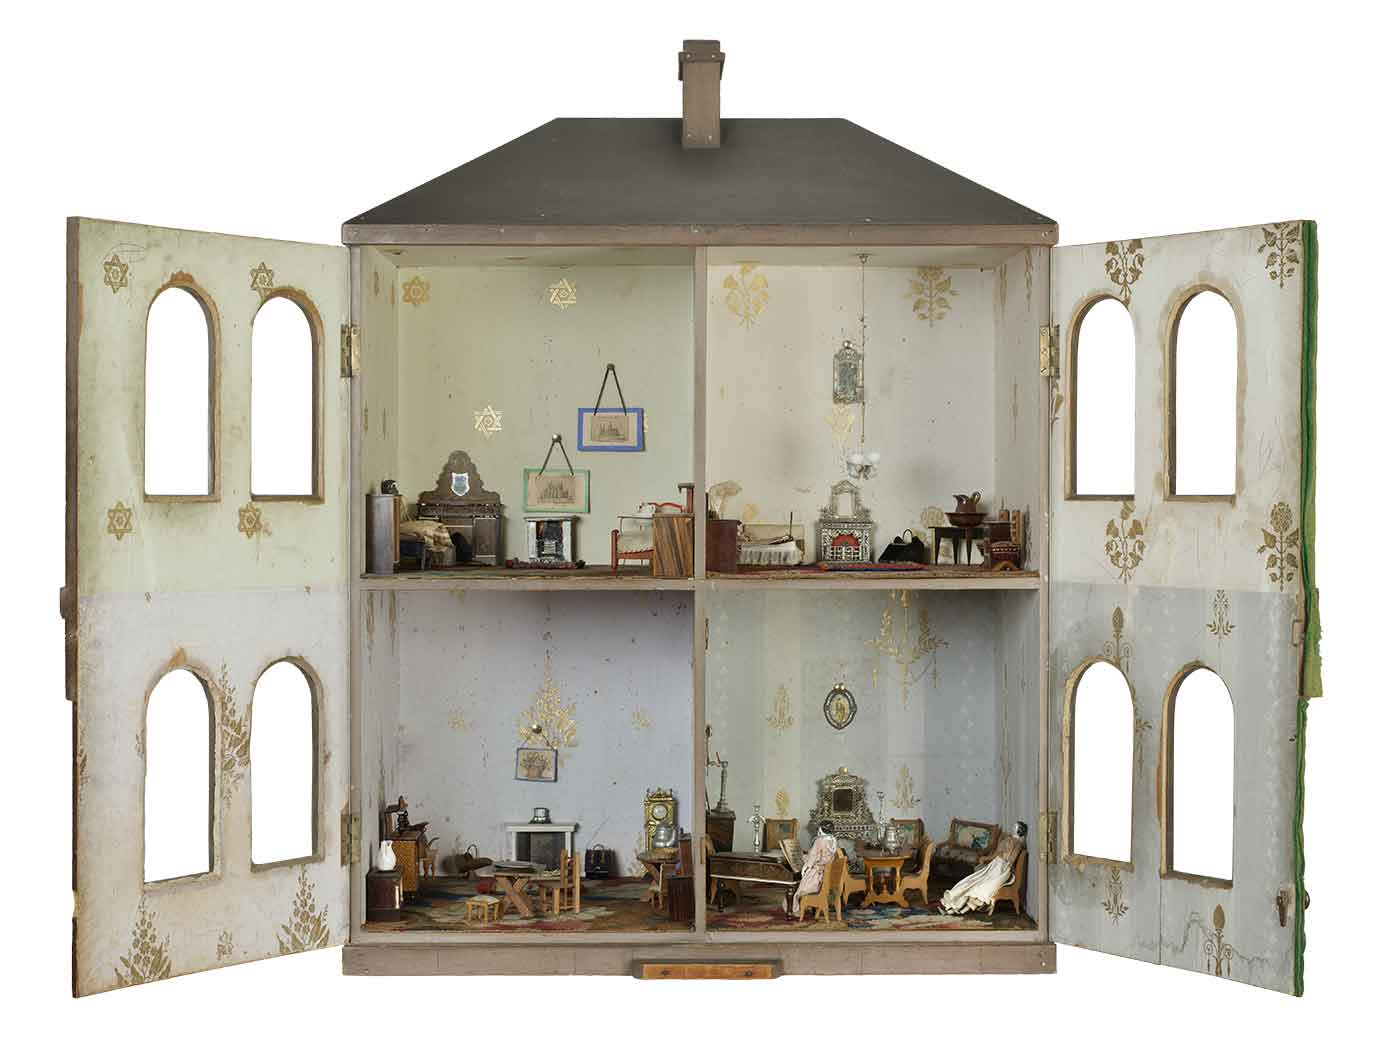 19th Century dollhouse featuring four rooms with miniature furniture, people and decor.